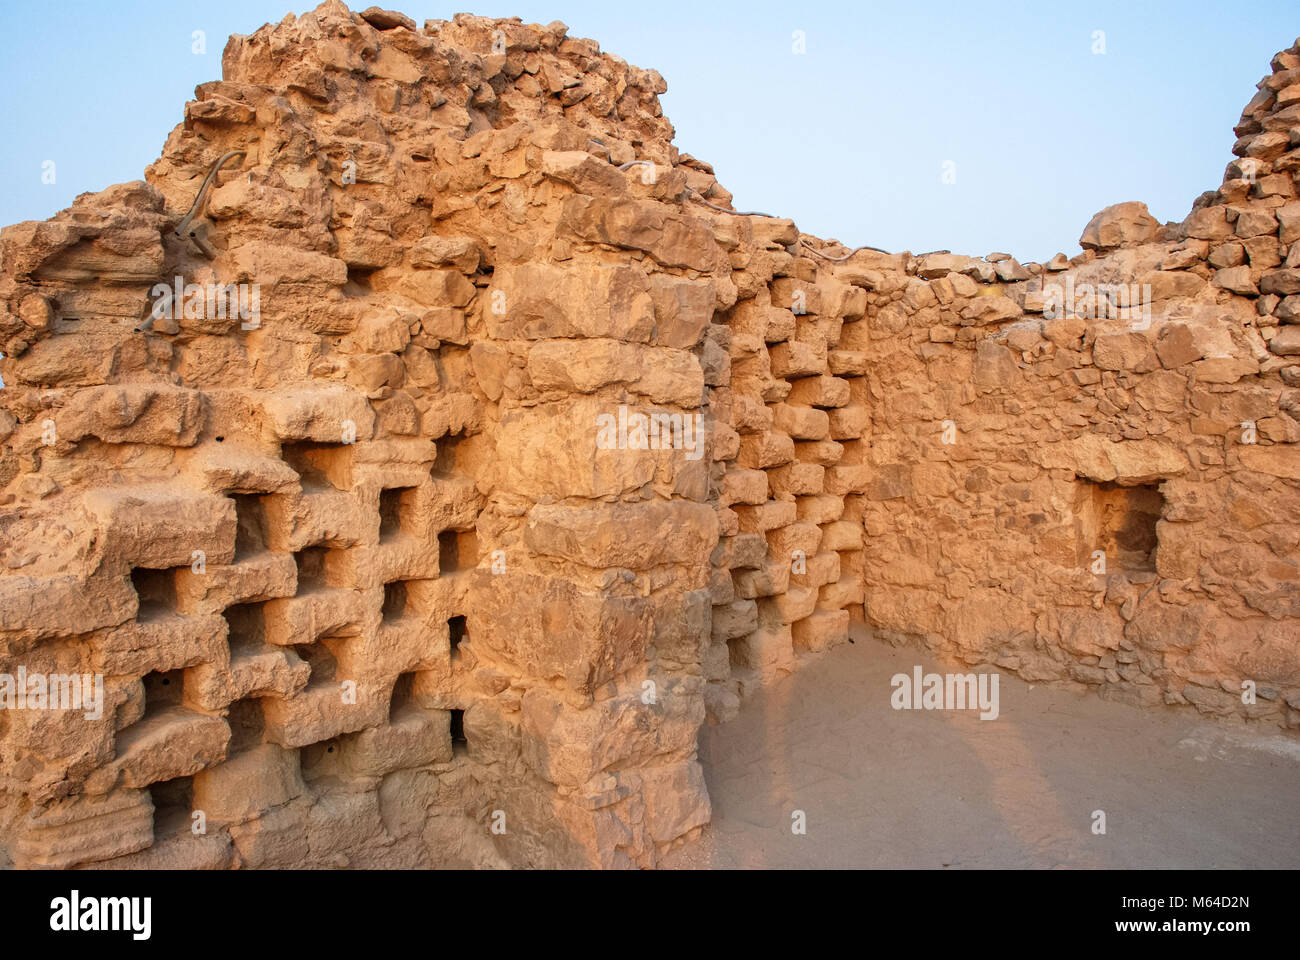 Horizonal picture of the ancient ruins on the top of plateau in Massada, Israel - Stock Image